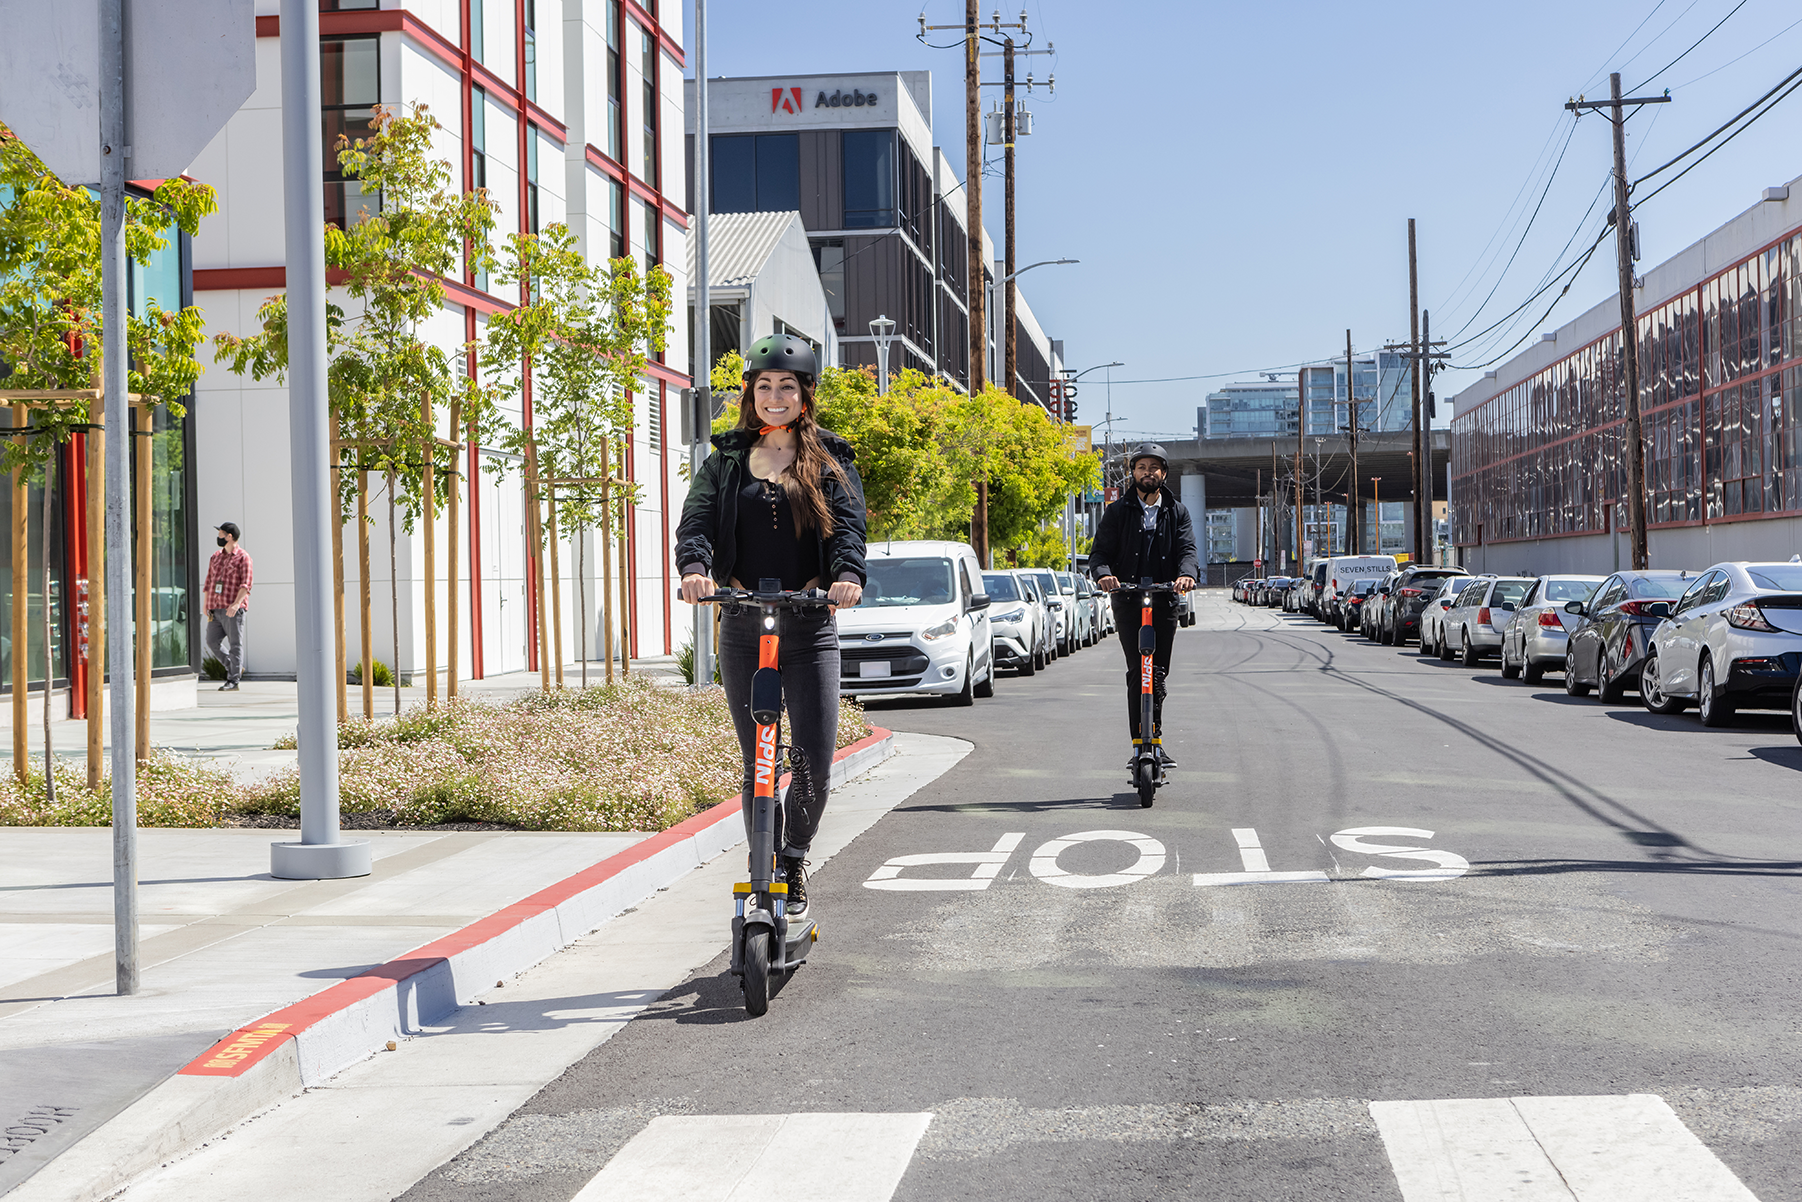 Two people wearing helmets riding e-scooters in the streets.